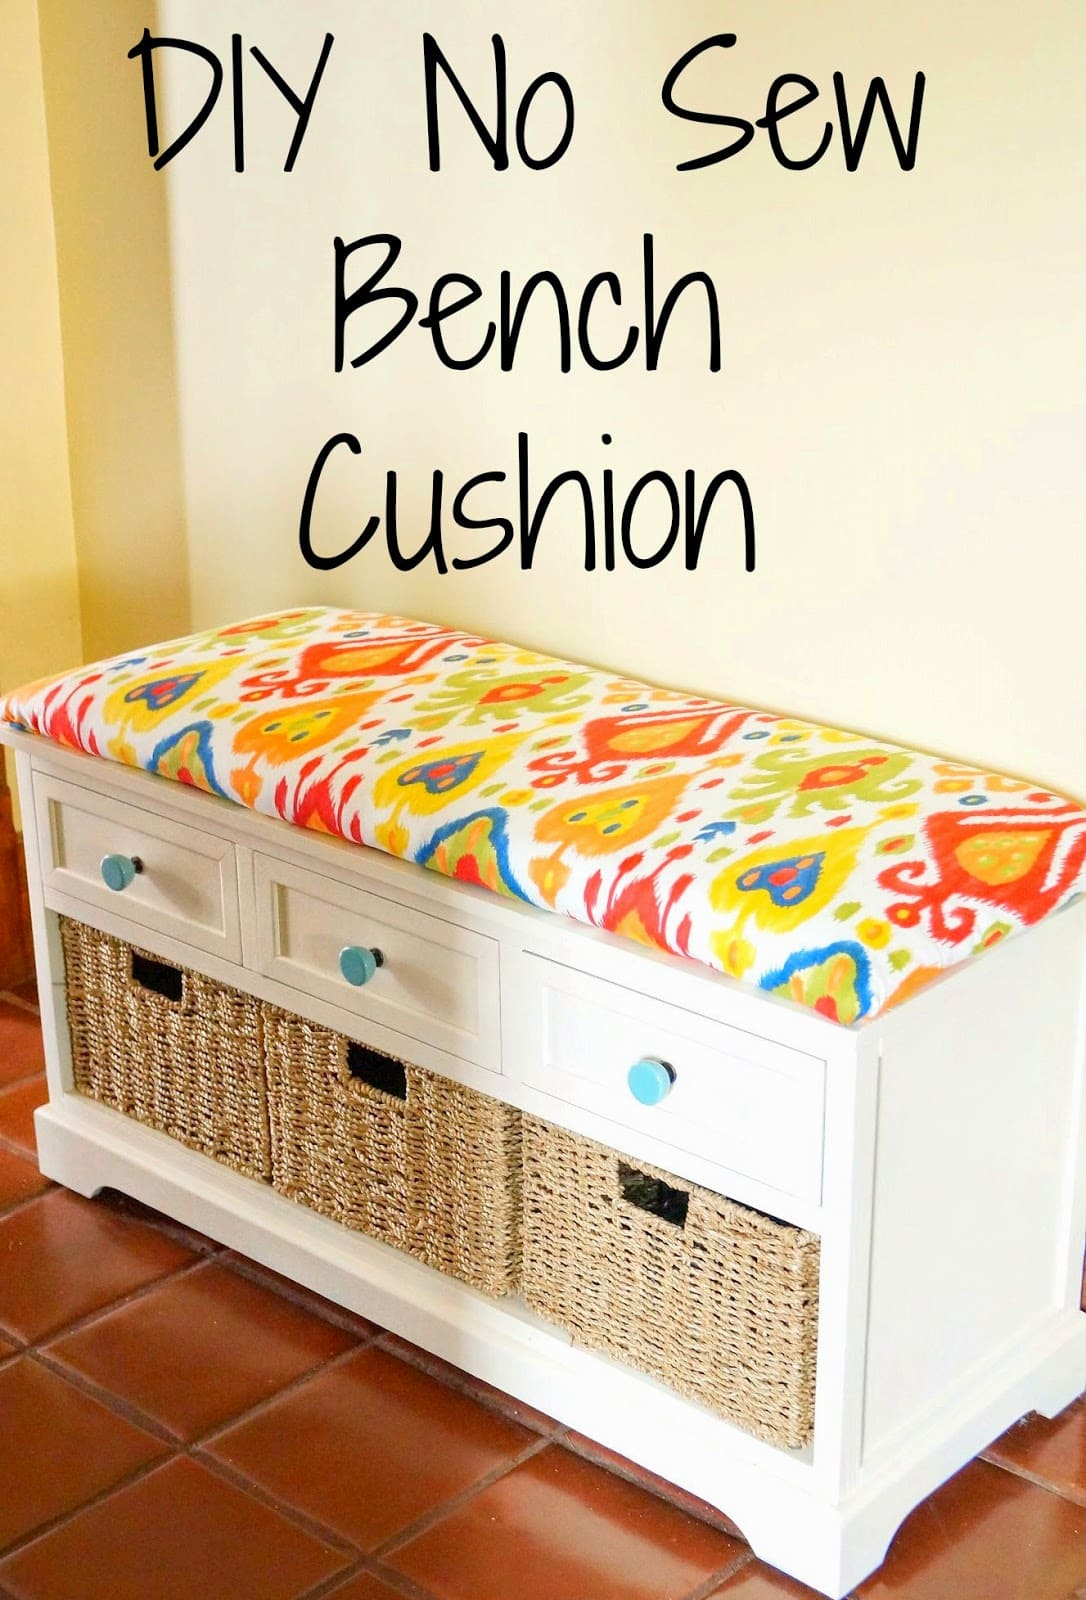 benchcushion